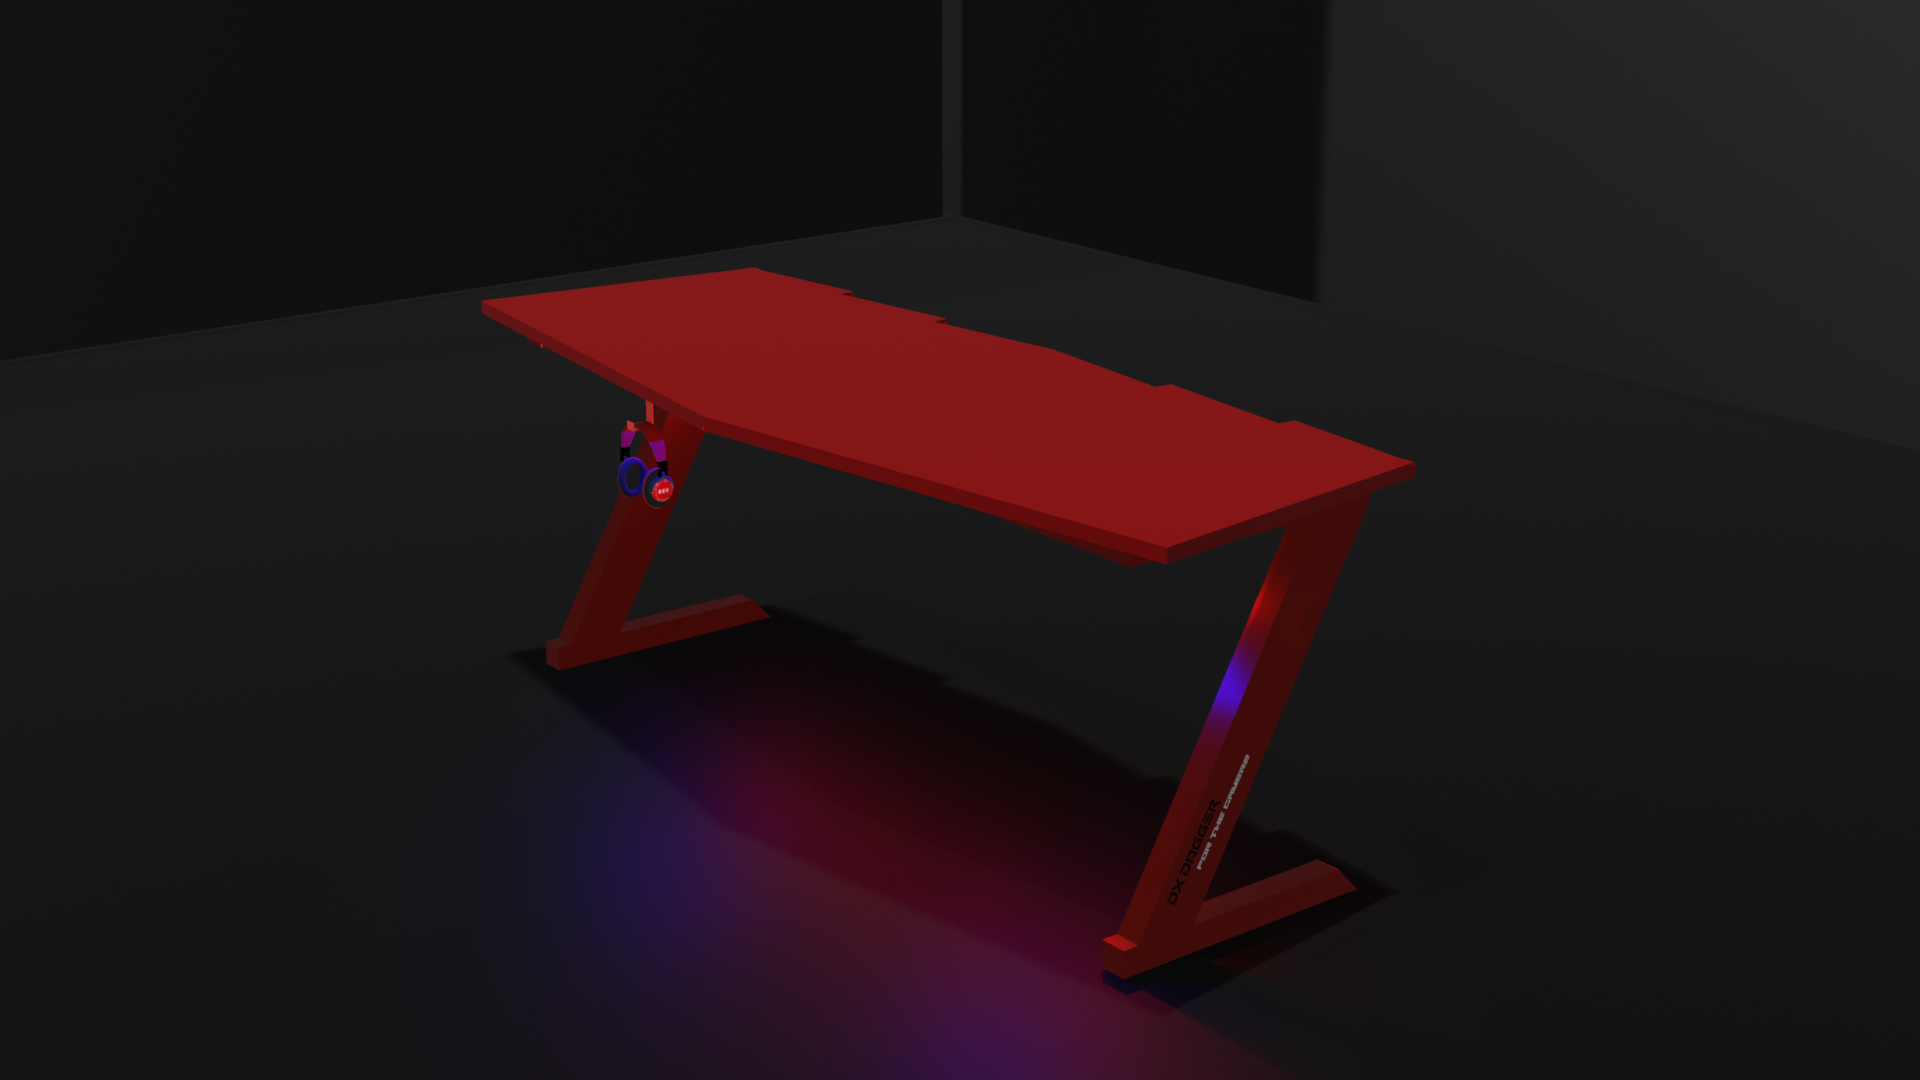 Gaming Table - DX_DAGGER Gaming Desk - Pc Gaming Table - PS4 Xbox Gaming Table - Computer Laptop Table - Led Table - Wide Designed Assembled Table - Study Table - Red Shaped Wood Surface Furniture - Headphones Holder - Workstation Gaming Table